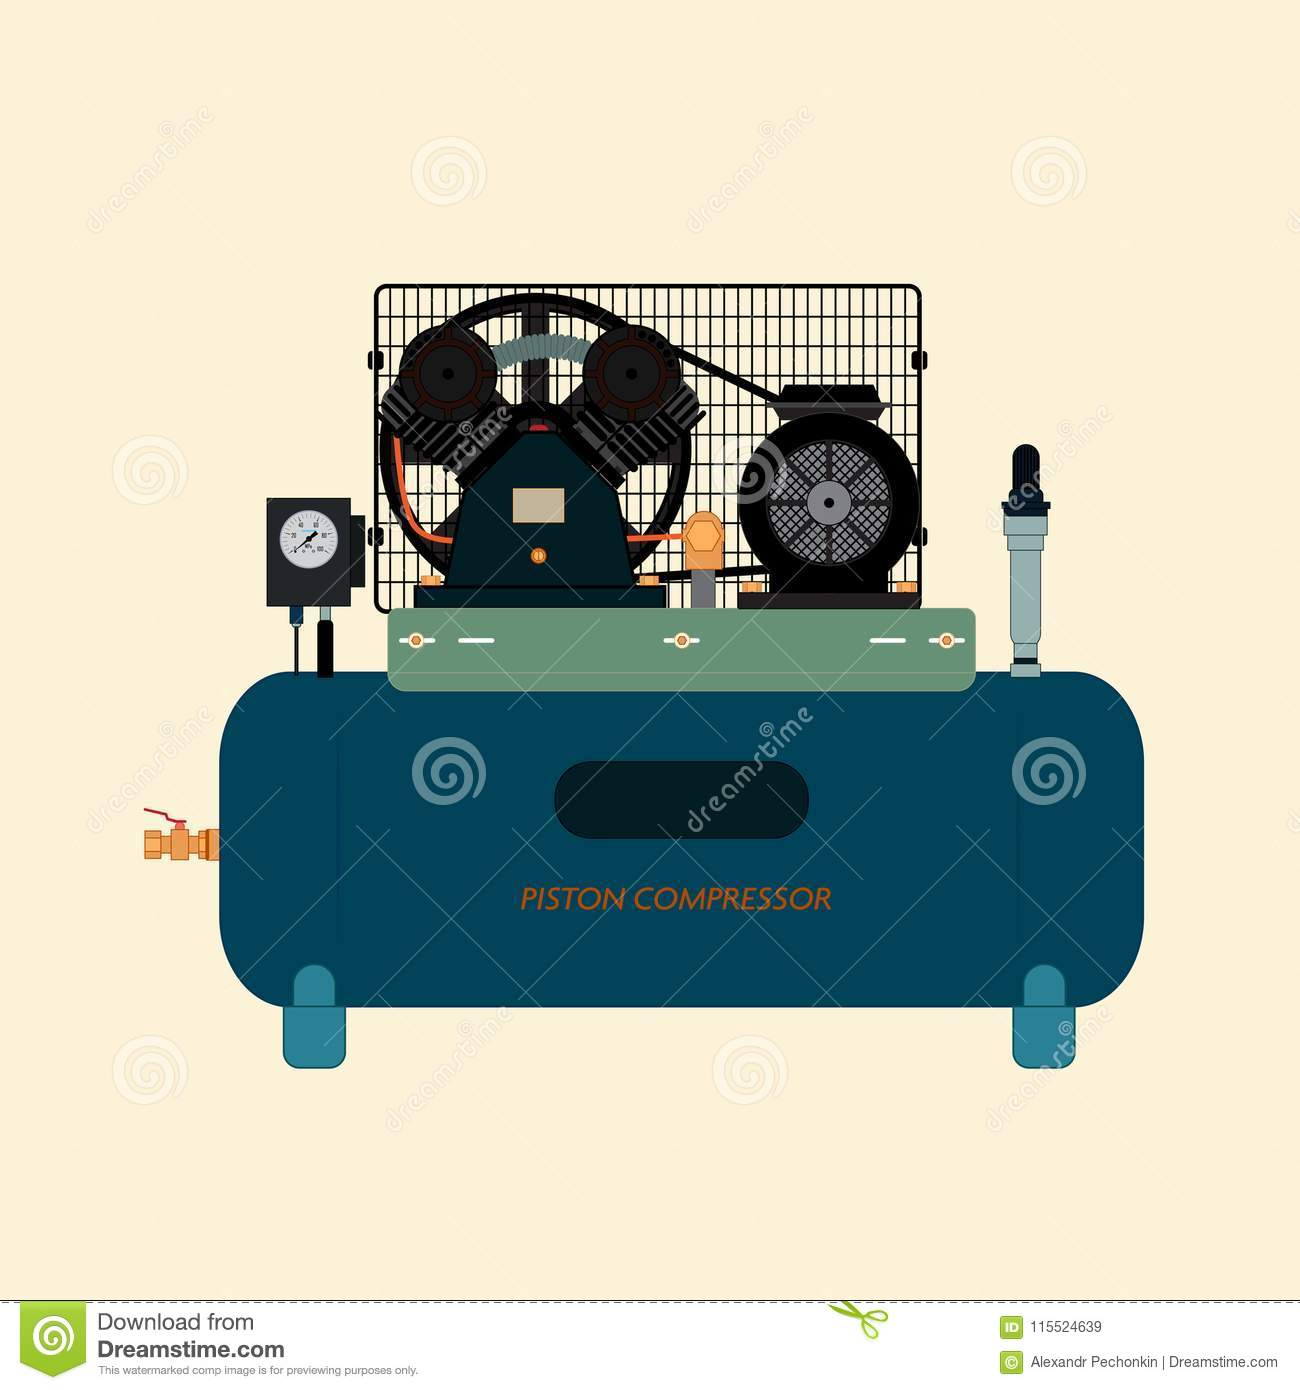 Reciprocating Piston Air Compressor Stock Vector Illustration Of